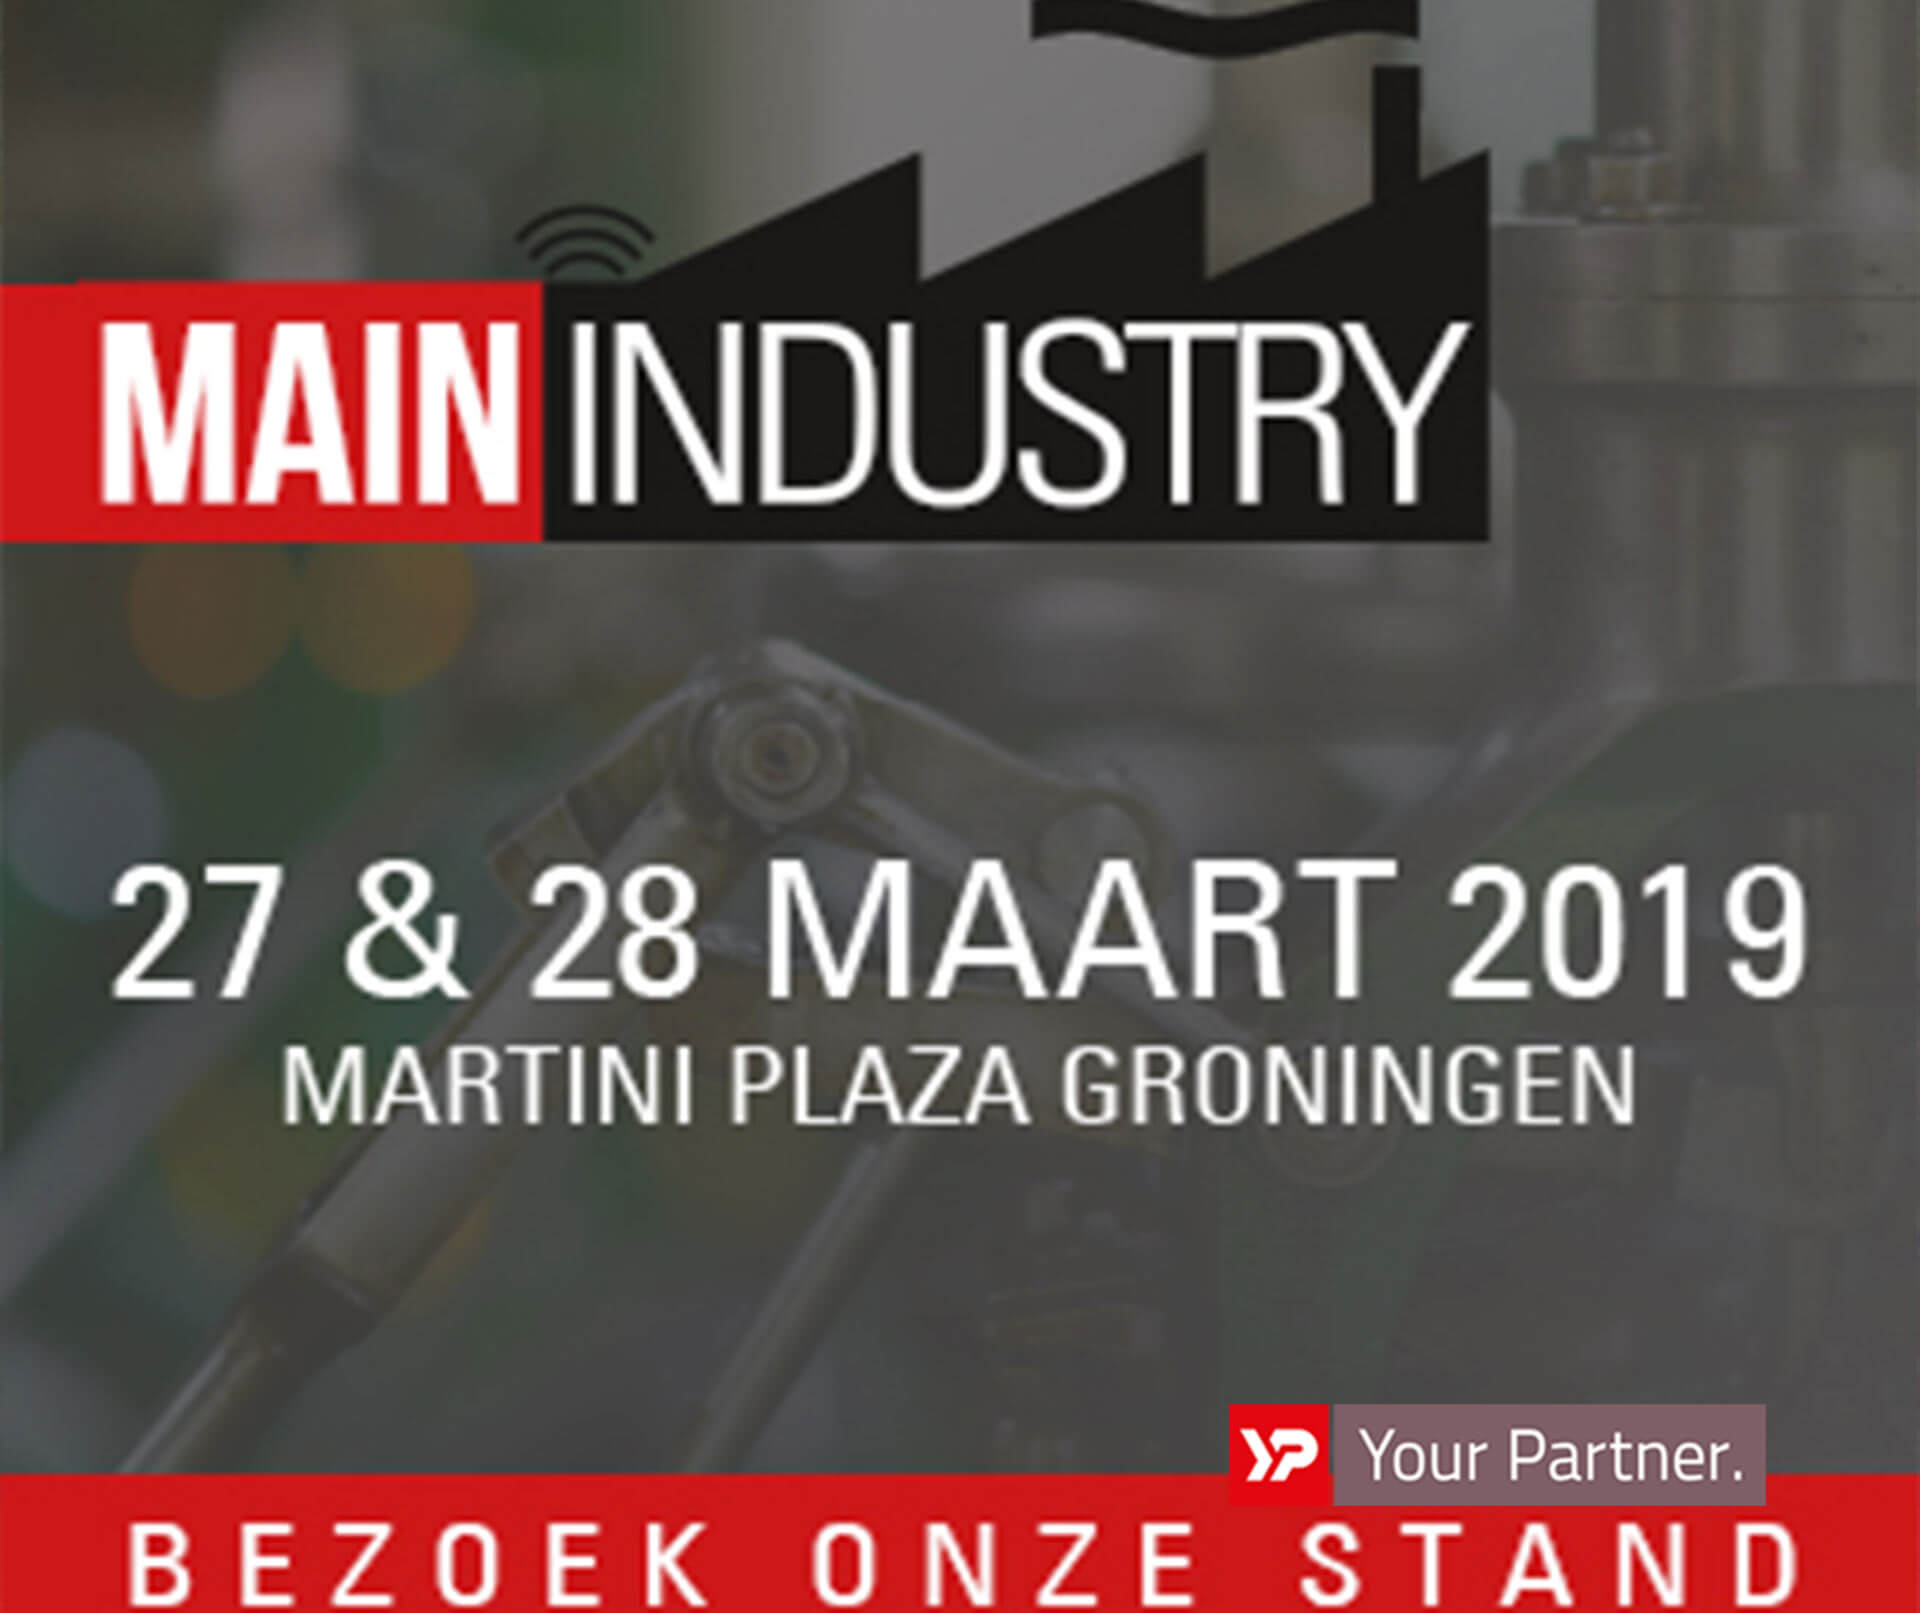 Main Industry - YP Your Partner